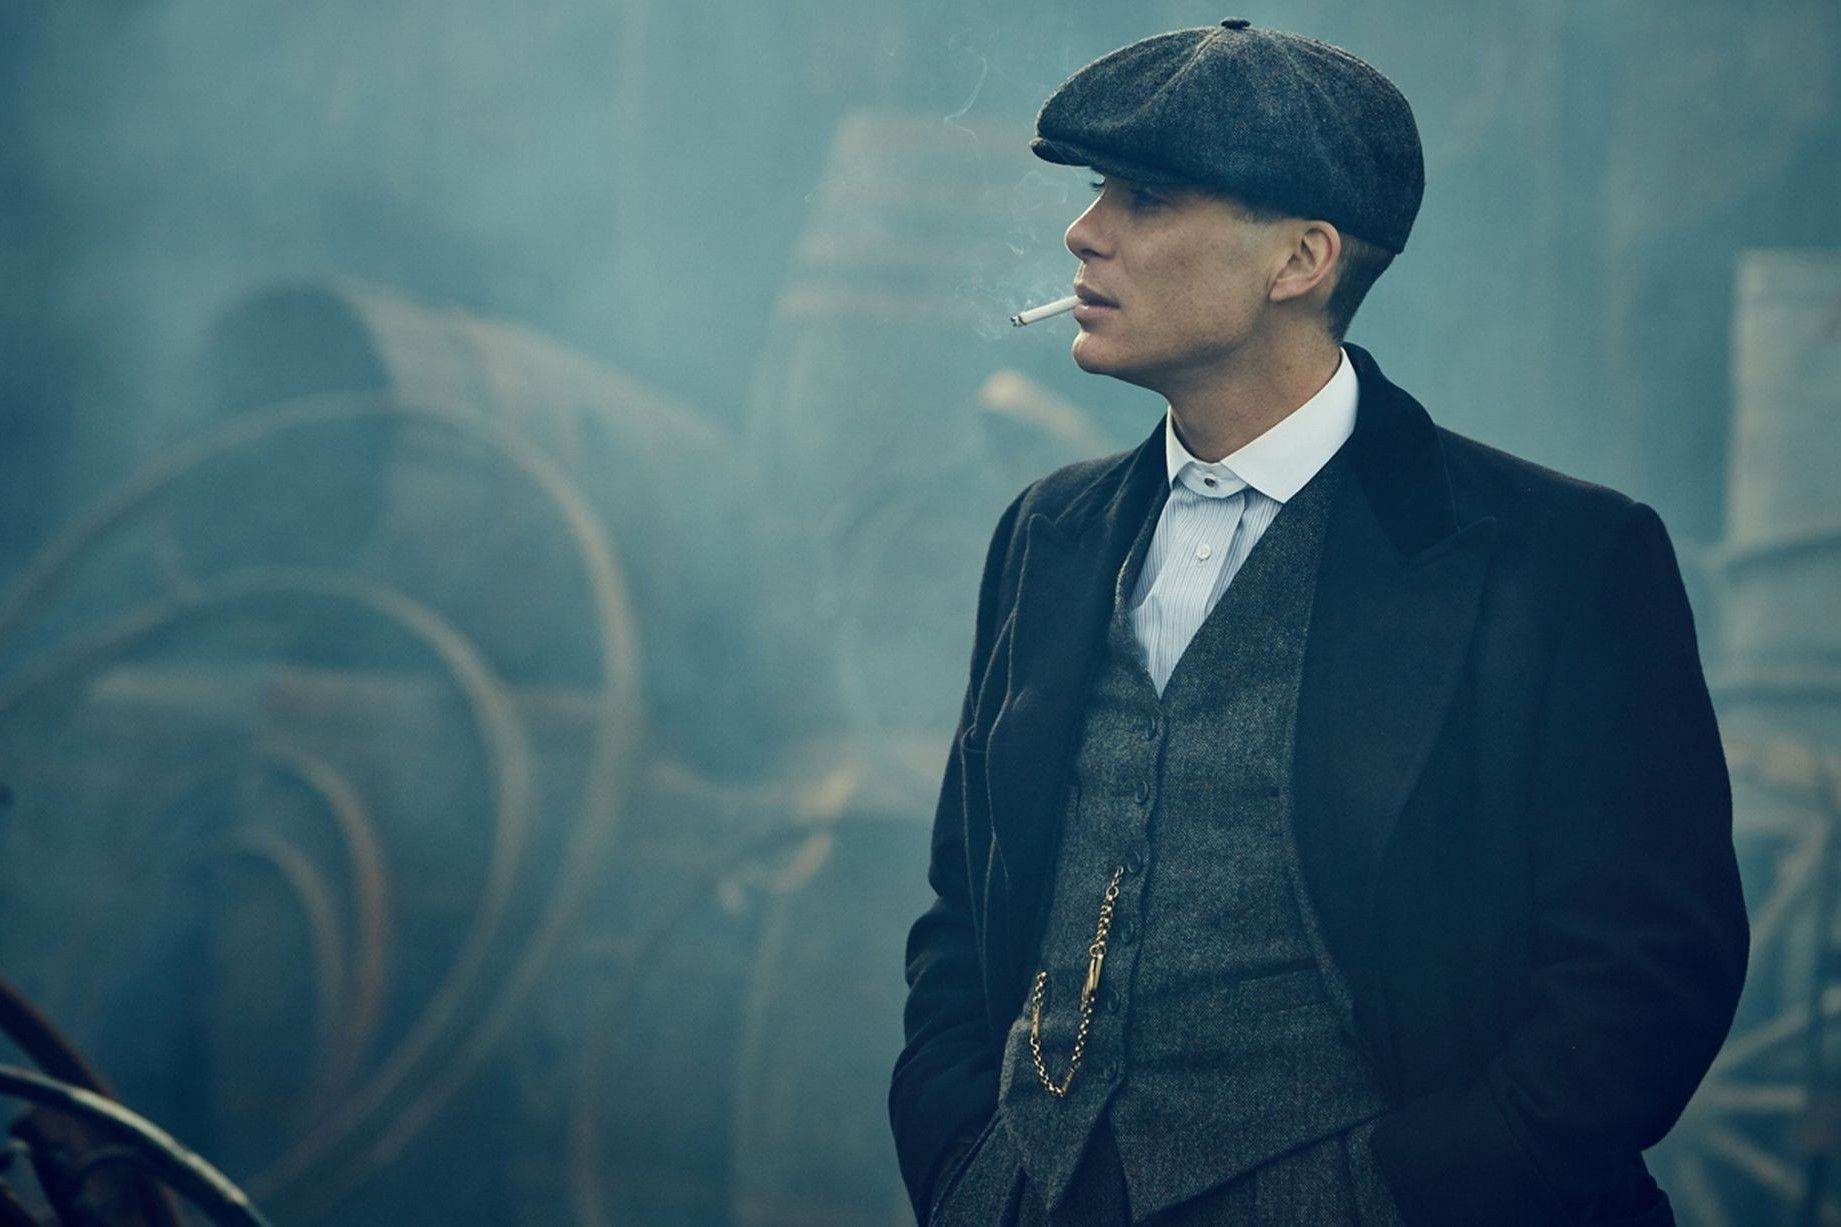 Peaky Blinders Wallpapers With Images Peaky Blinders Wallpaper